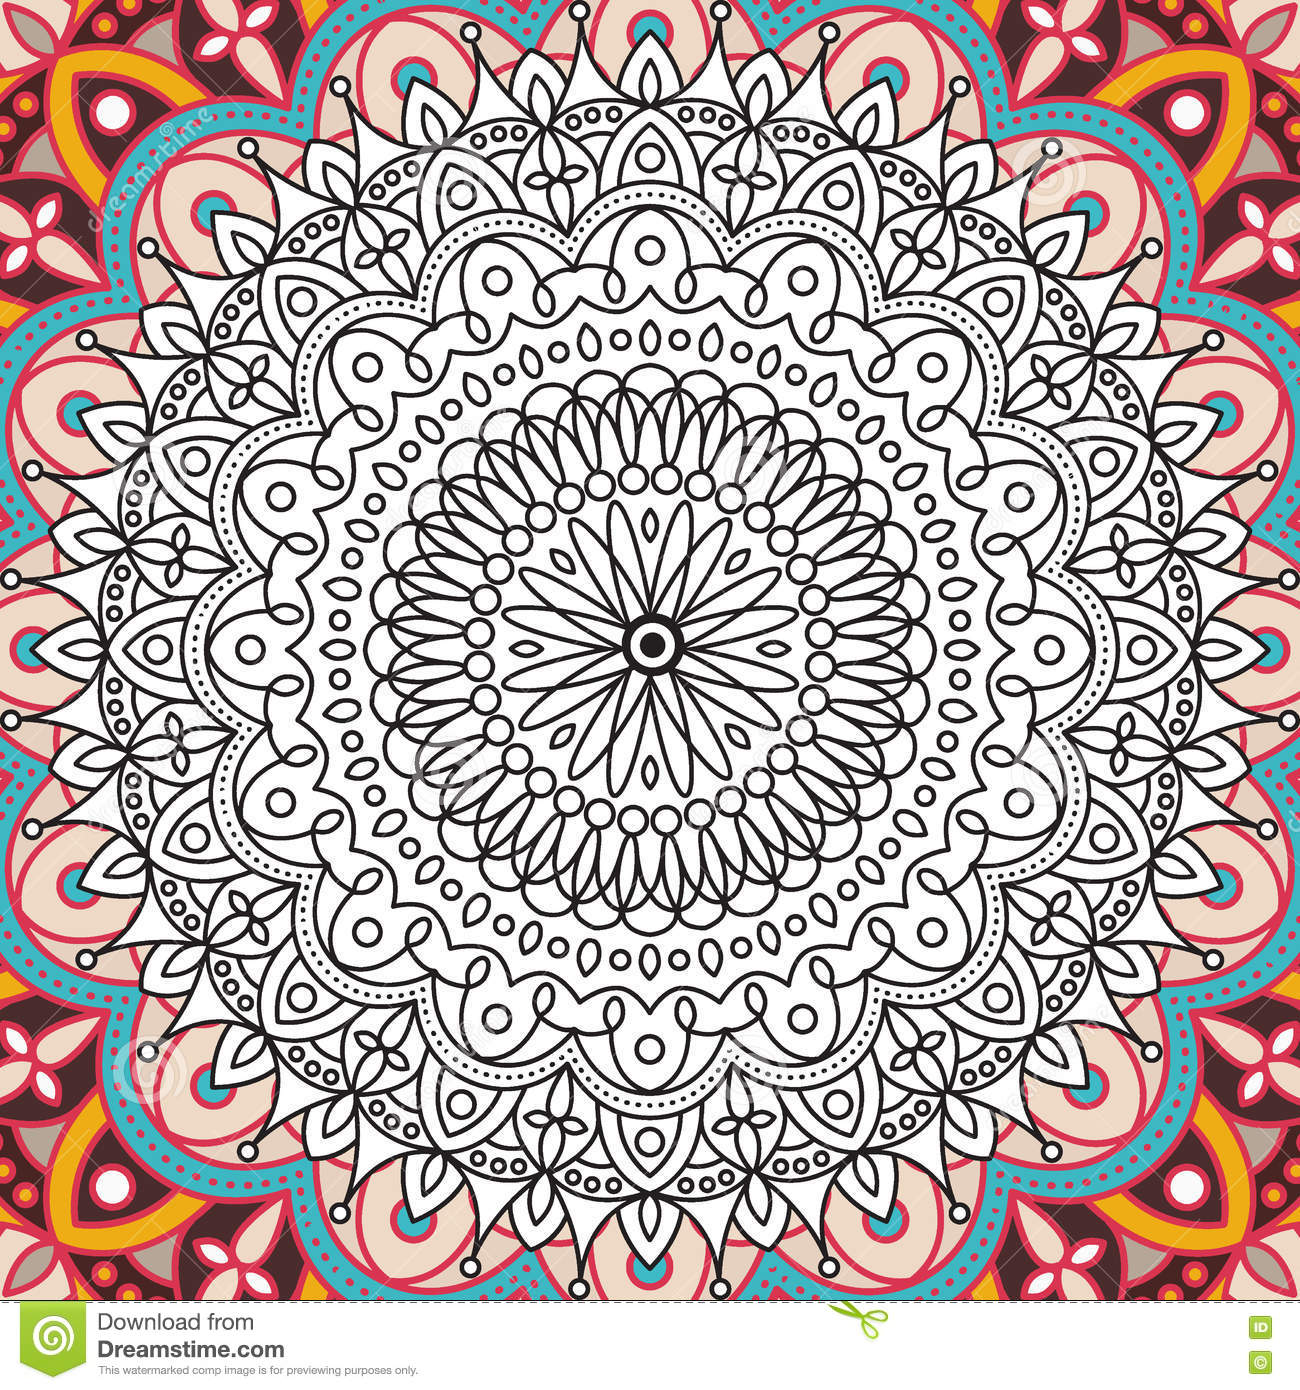 printable coloring book page for adults mandala design activity